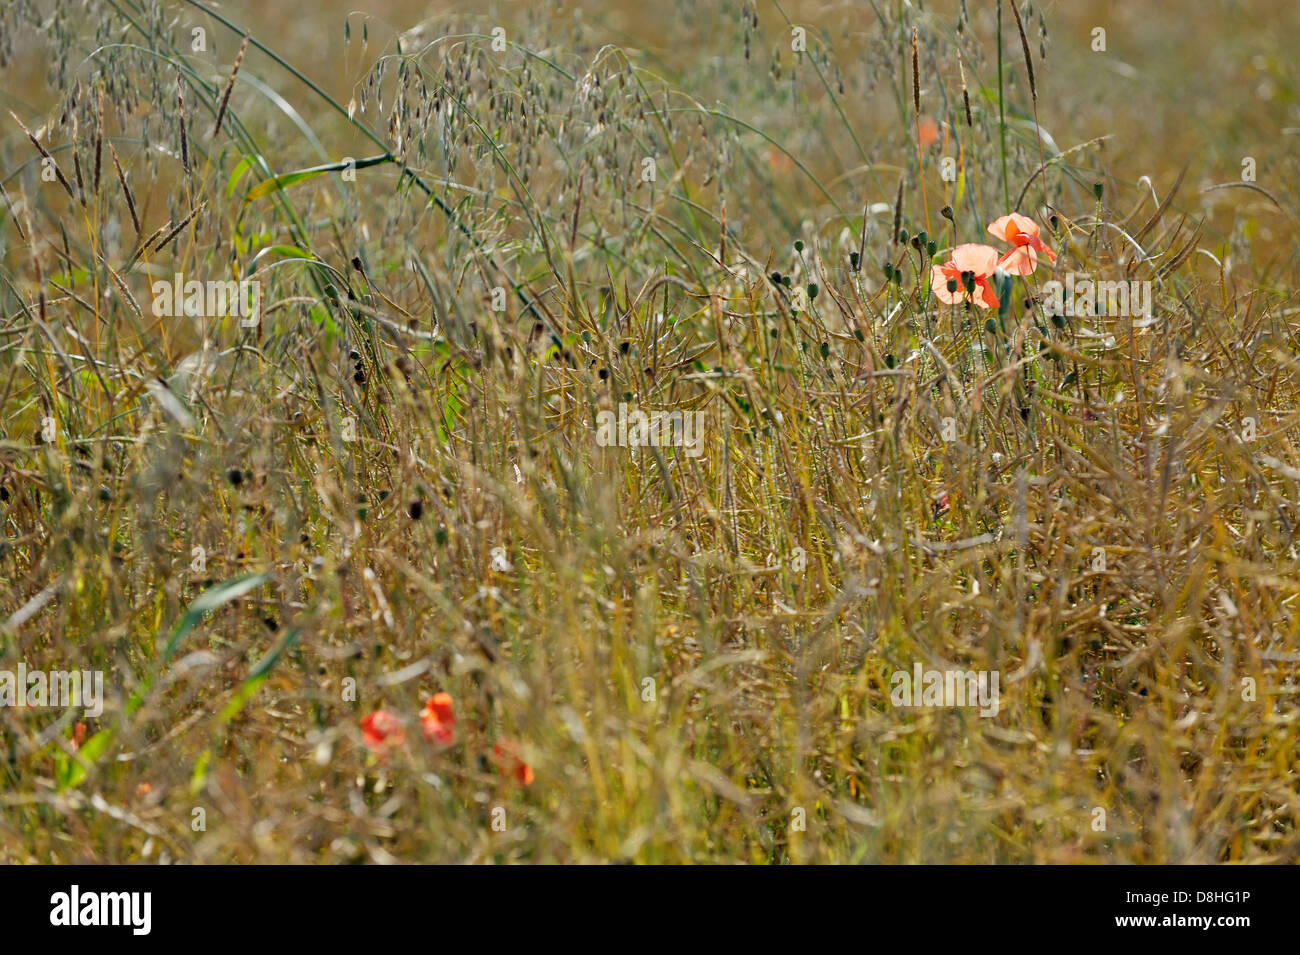 Grasses and poppies growing in English summer meadow hay field, Oxfordshire, England. Shallow depth of focus - Stock Image